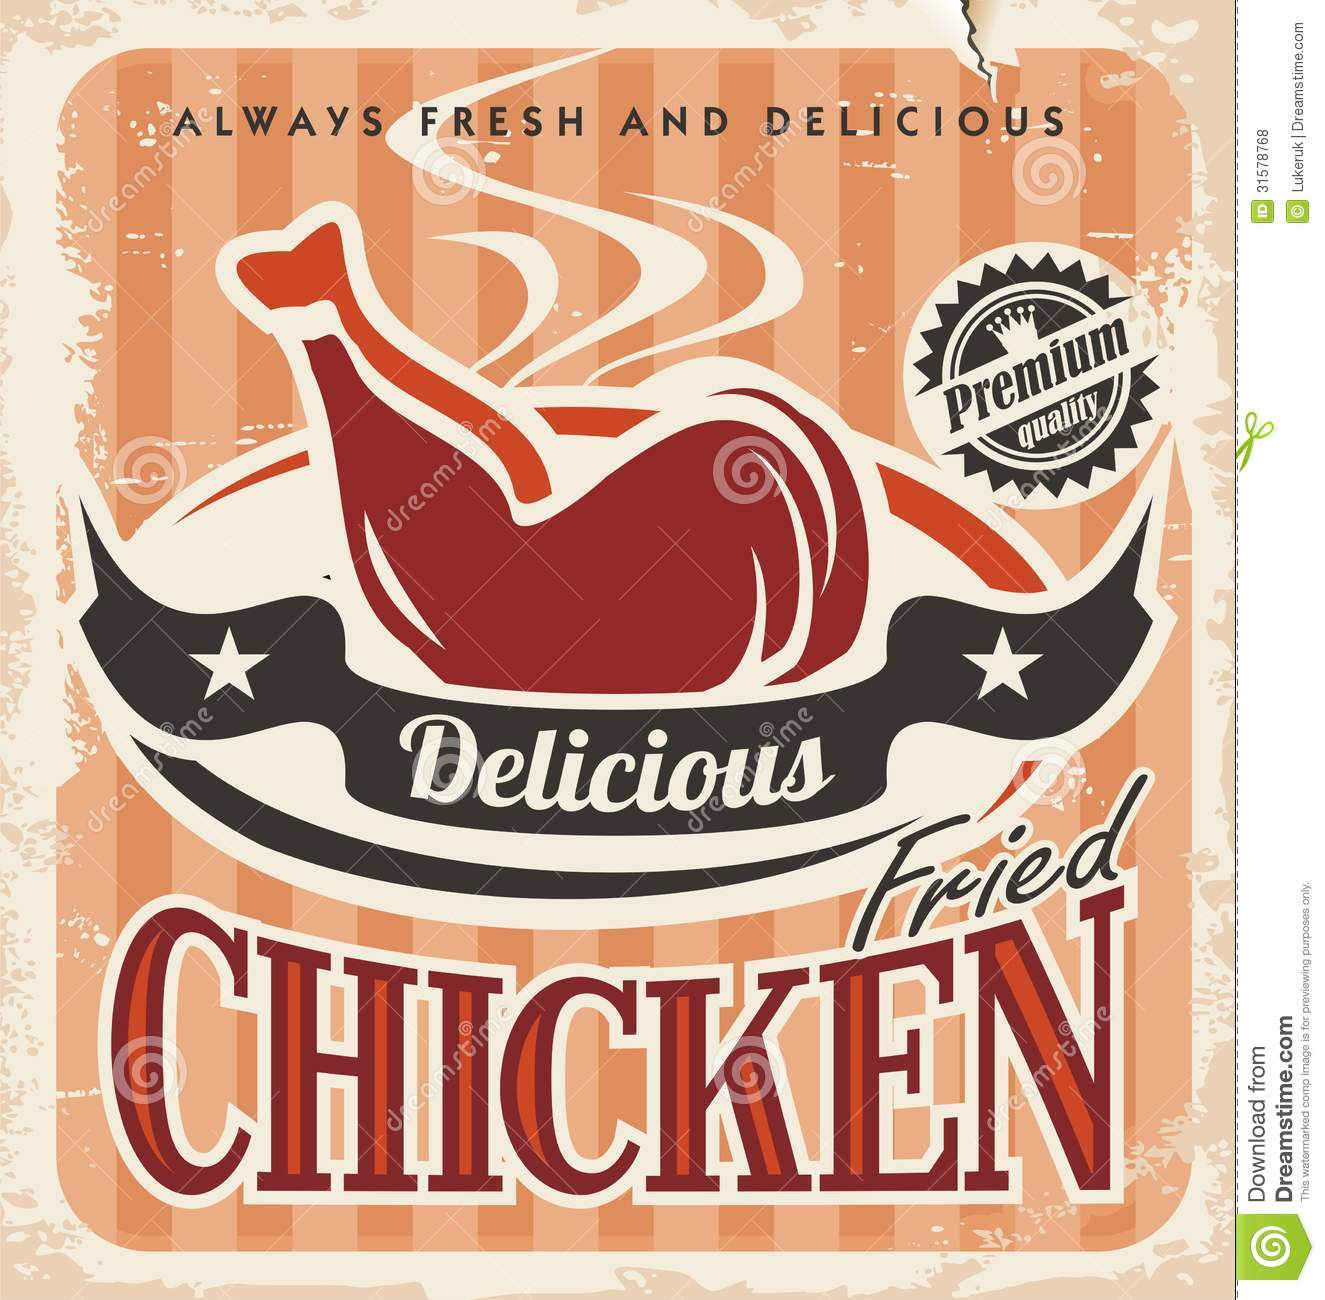 Poster design 50s - Vintage Fried Chicken Poster Design Royalty Free Stock Photos